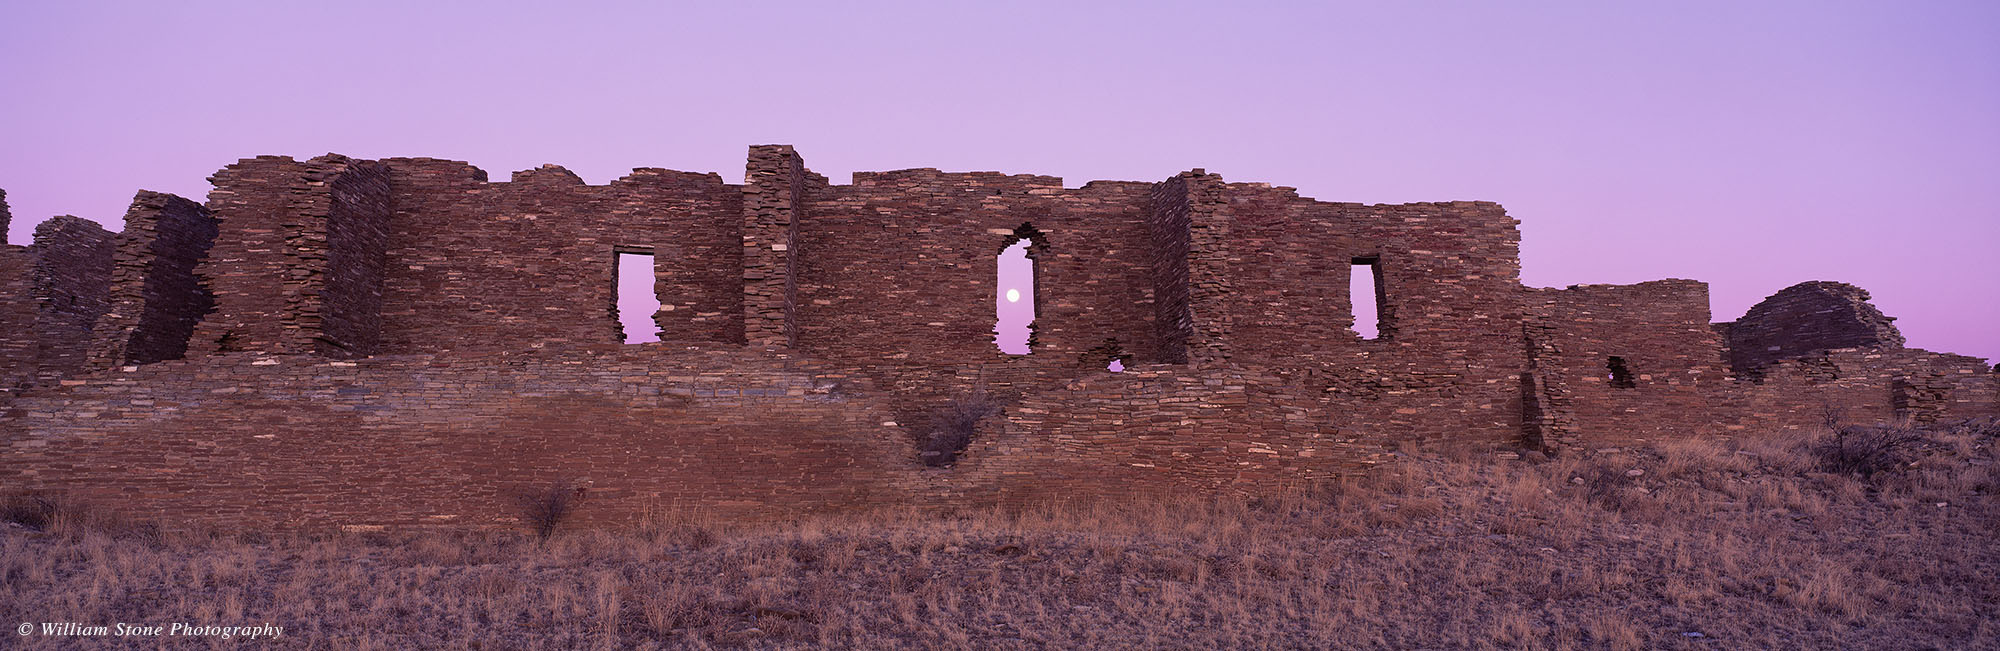 The Mystery of Chaco Canyon - photo by William Stone Photography